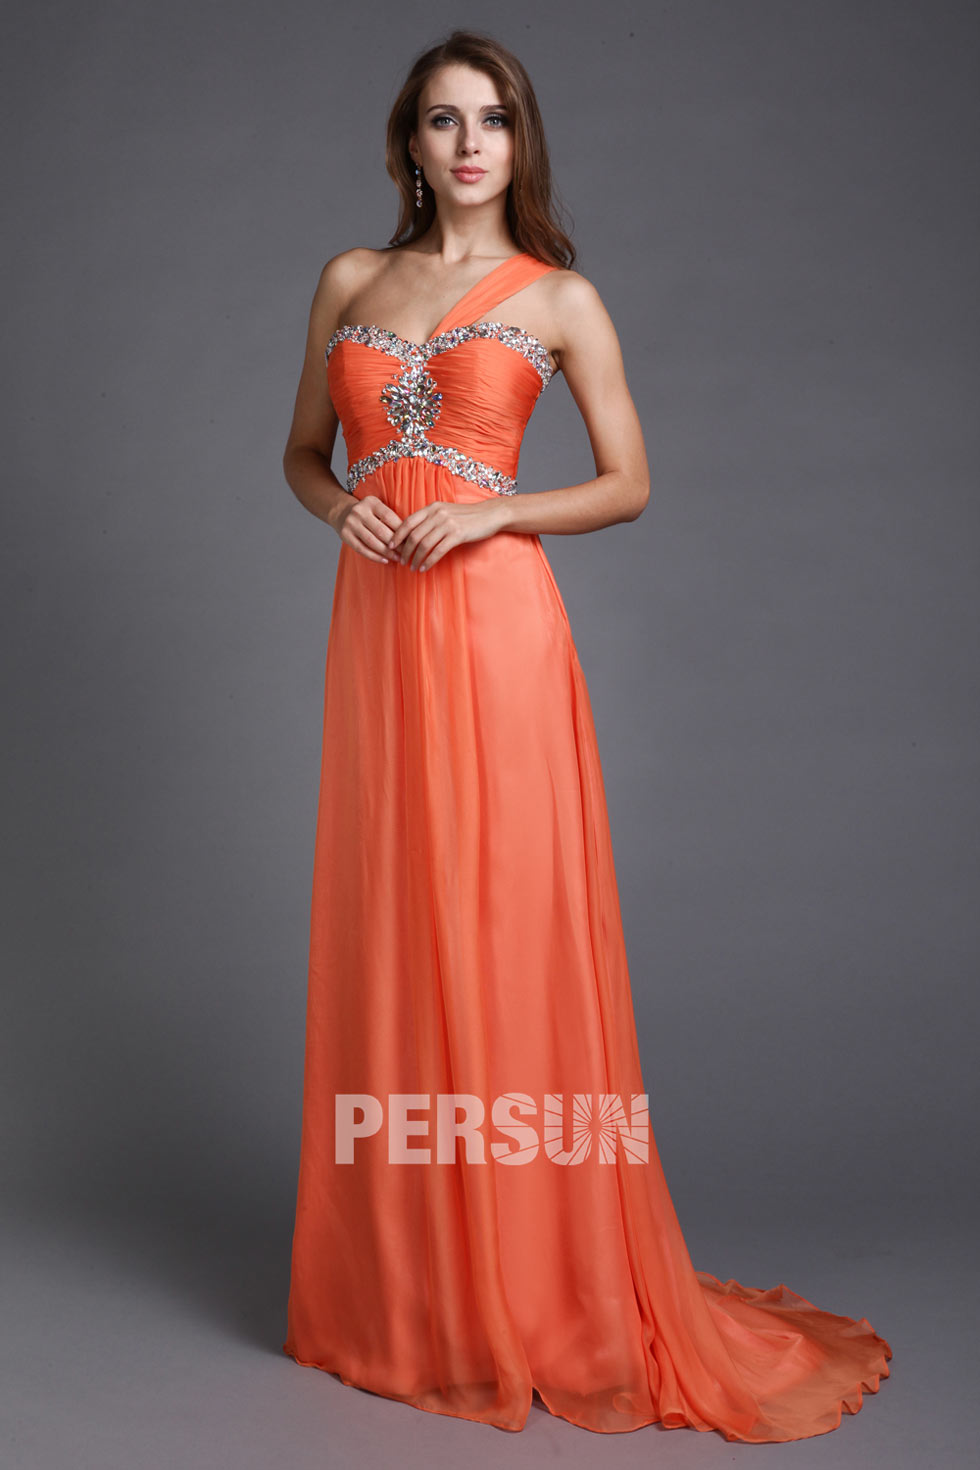 robe de cocktail longue couleur orange ruchée